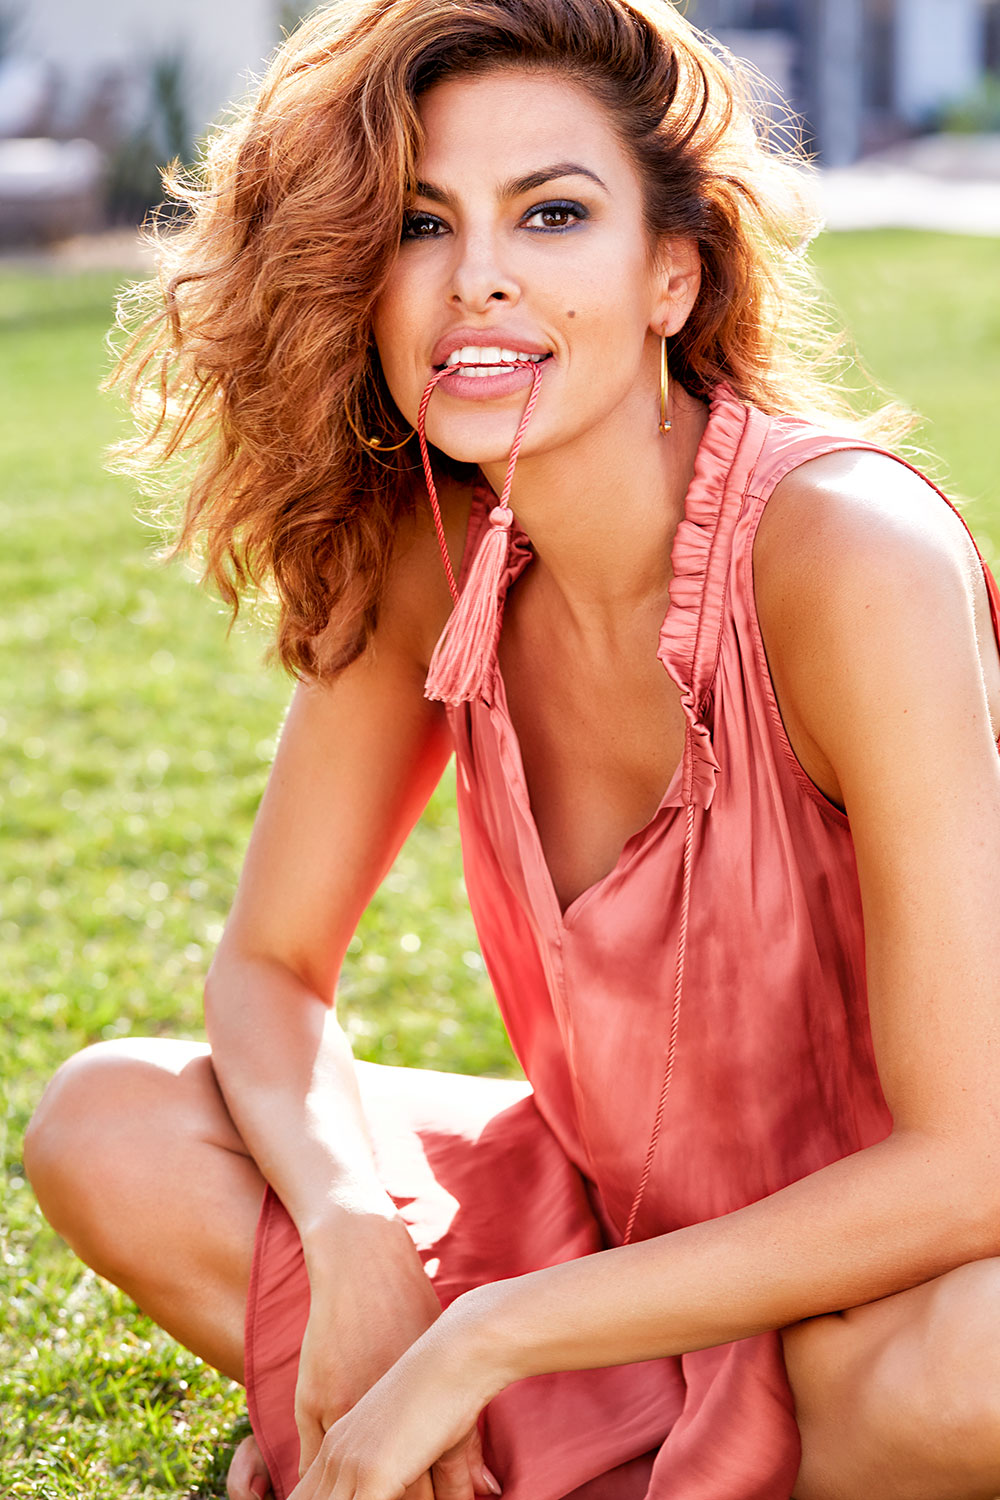 Eva Mendes Shares Her Beauty and Fitness Tips In the April ...